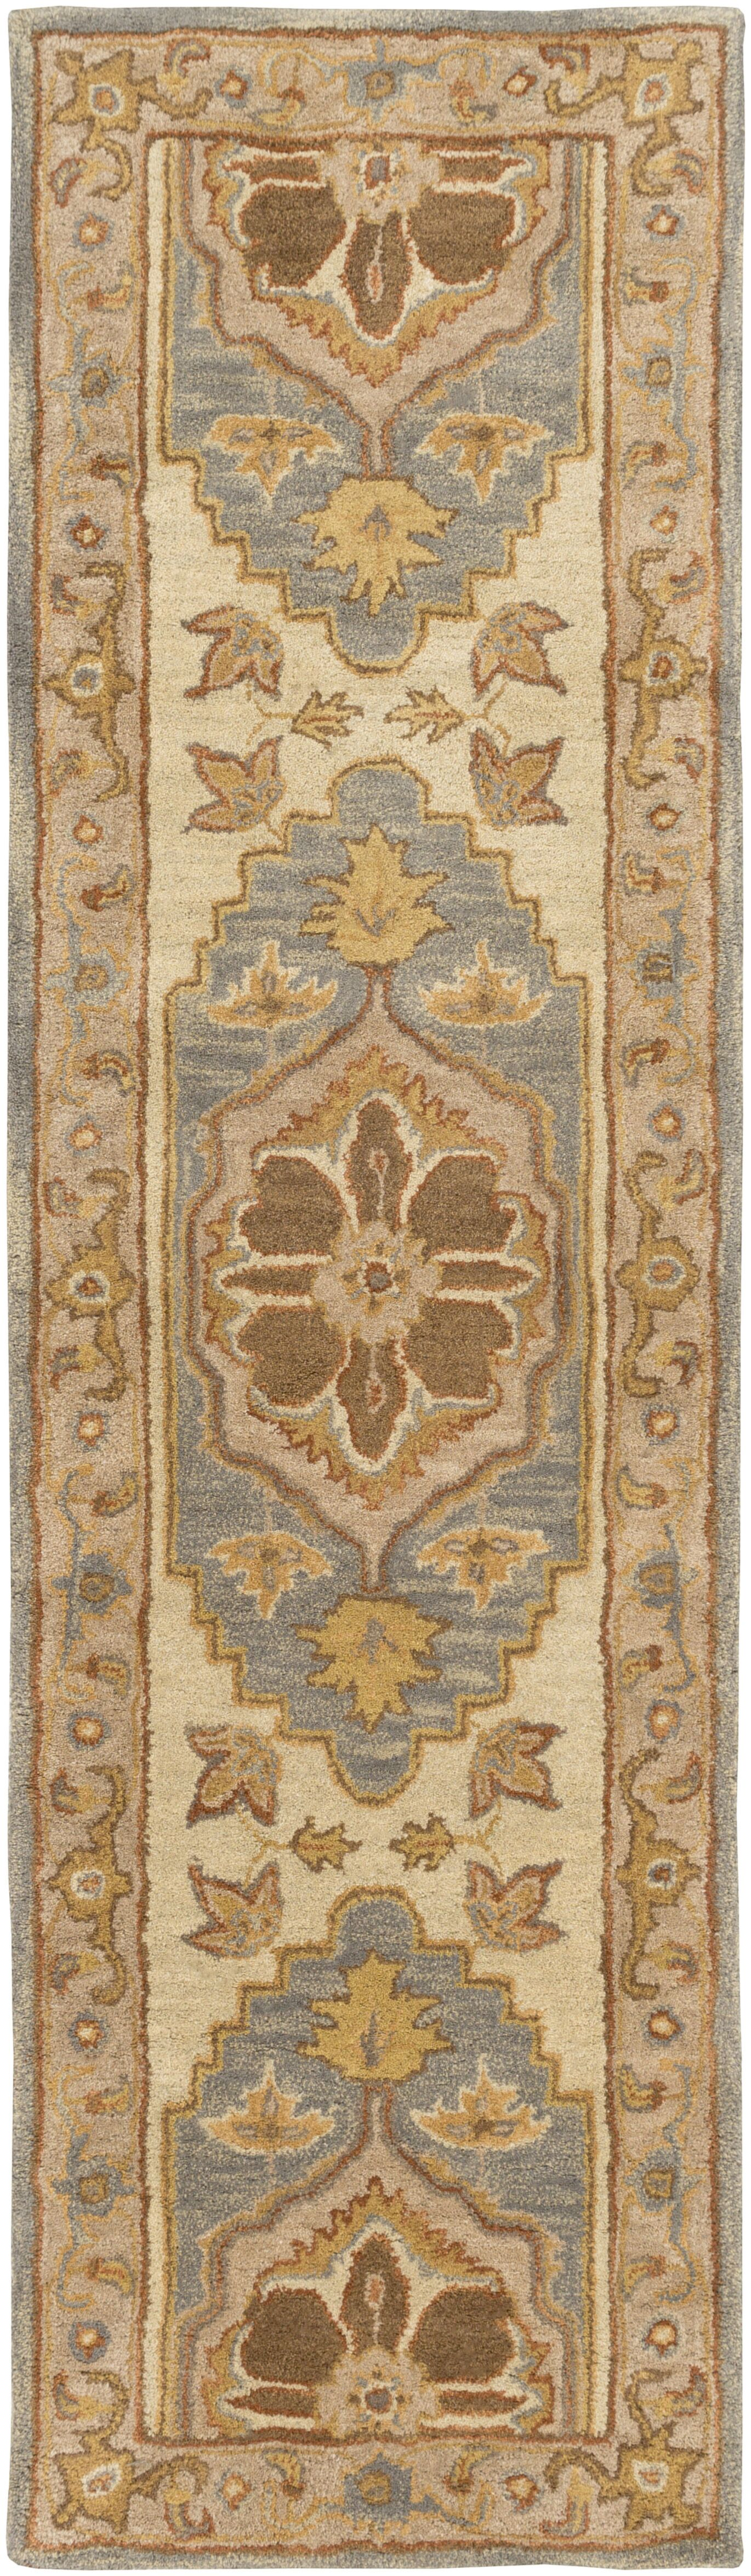 Dussault Brown Area Rug Rug Size: Runner 2'3